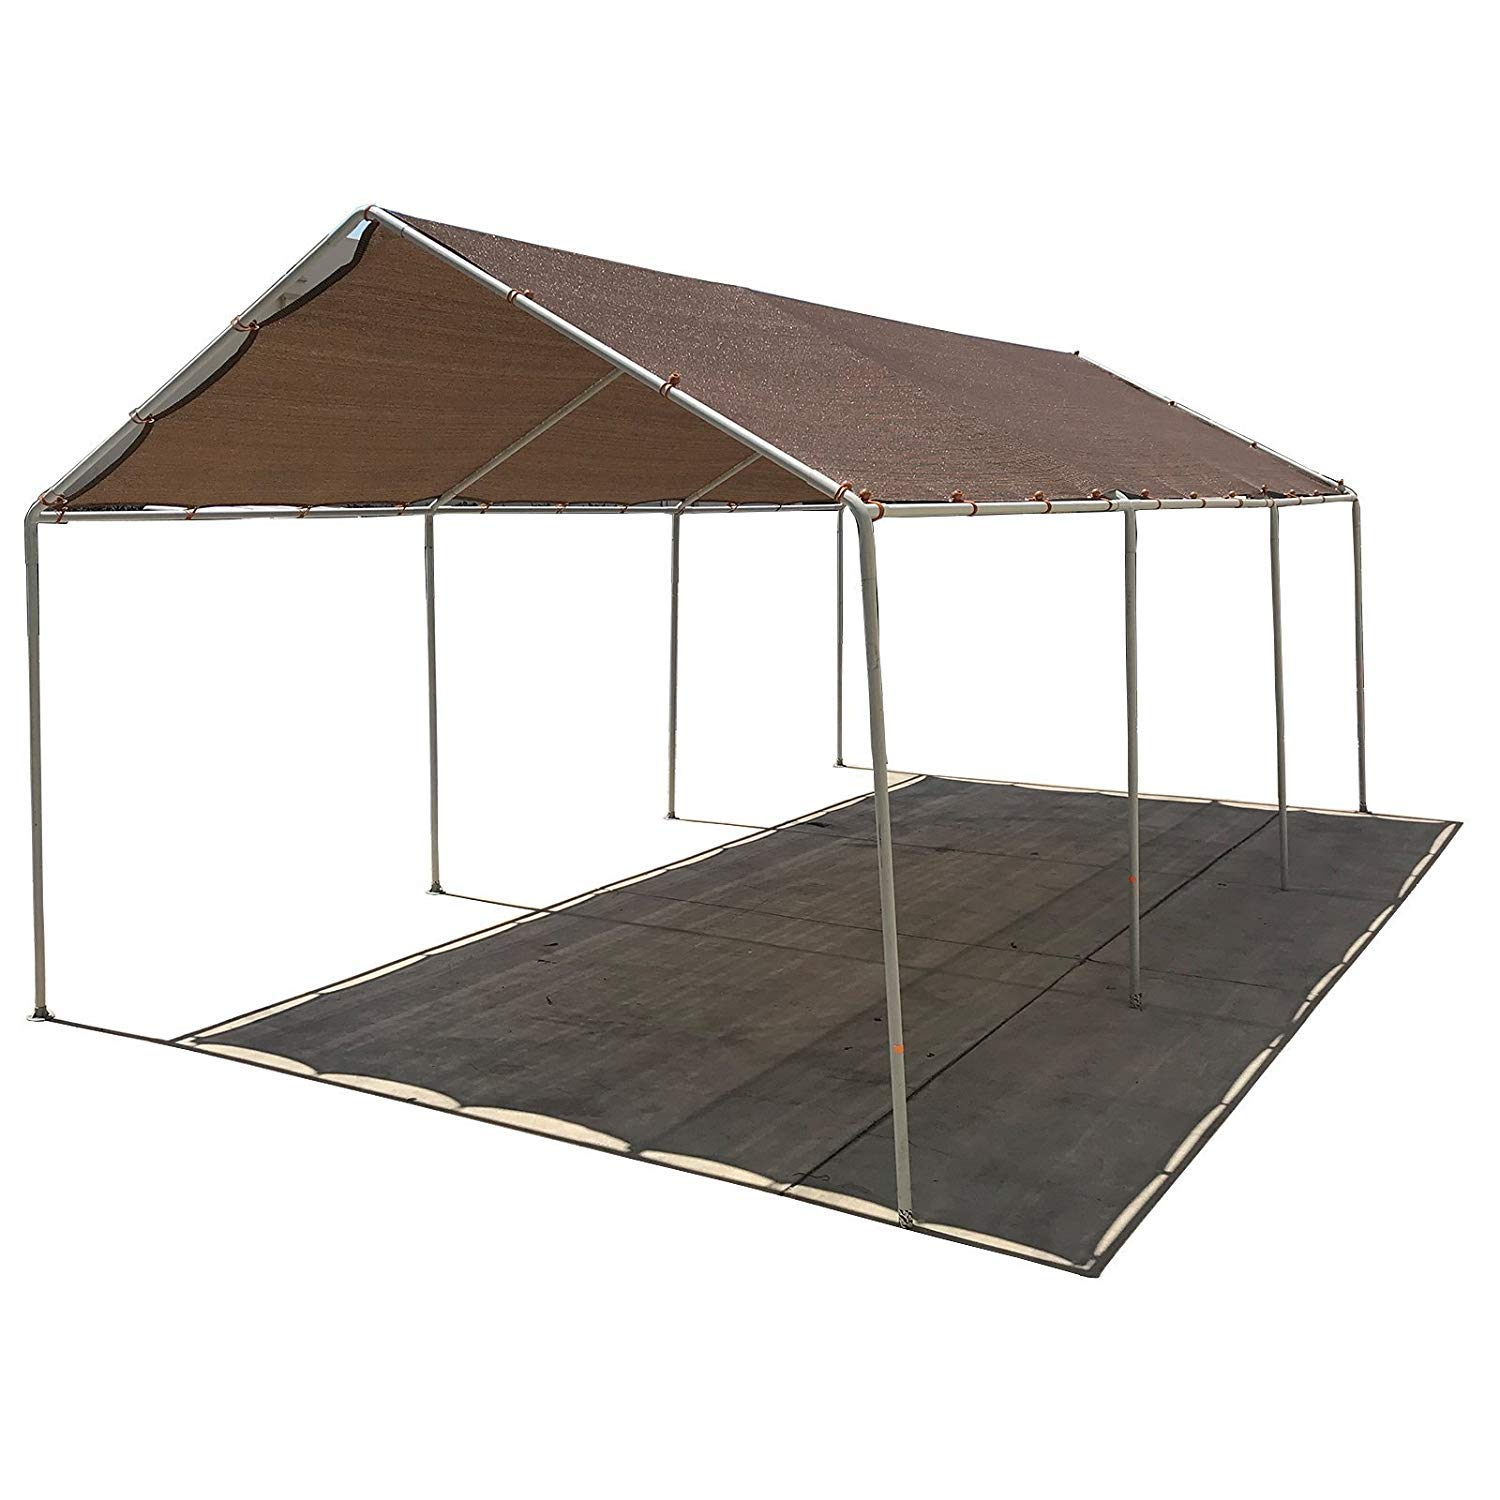 Alion Home Carport Canopy Replacement Permeable Sun Shade Cover for Low & Medium Peak(Frame Not Included) (10' x 20', Mocha Brown)